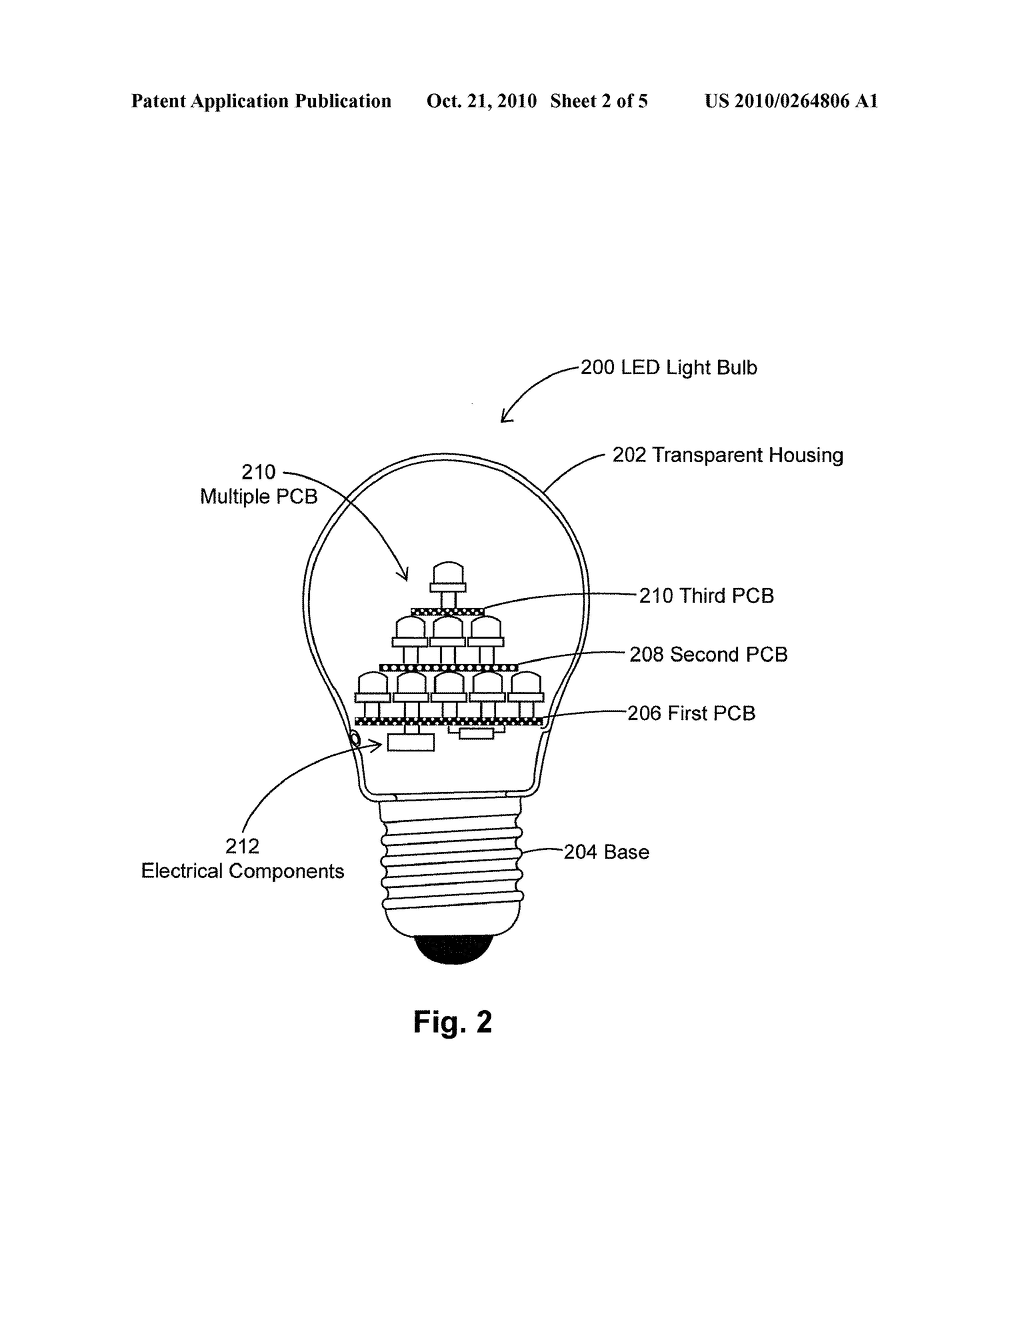 hight resolution of light bulbs diagram wiring diagram origin light bulb outlet diagram led light bulbs in pyramidal structure